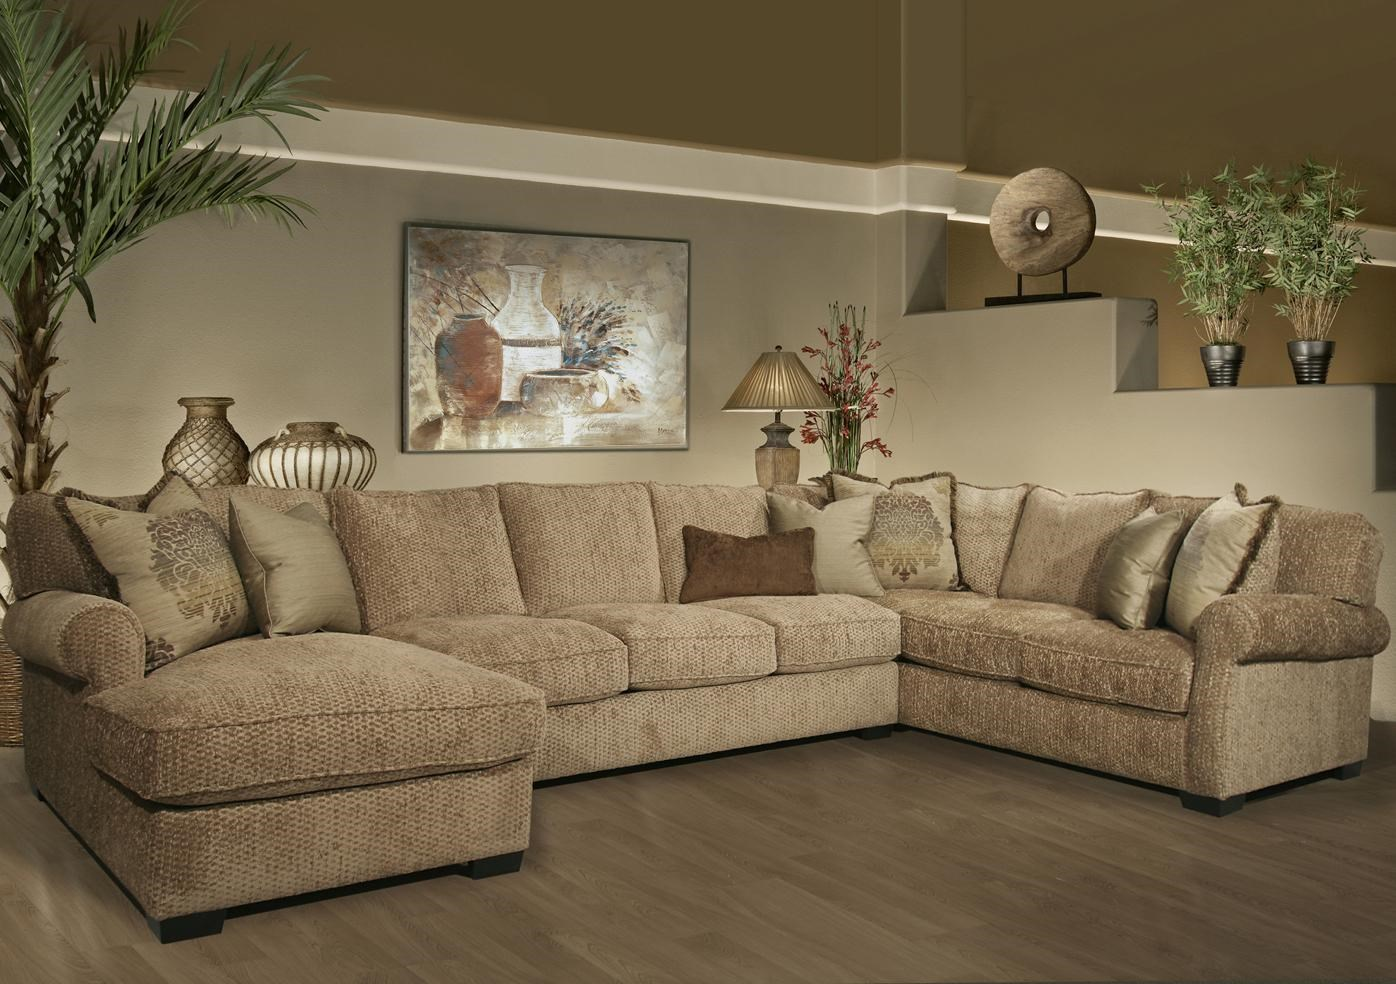 Rio Grande 3 Piece Sectional by Fairmont Designs : designer sectional couches - Sectionals, Sofas & Couches